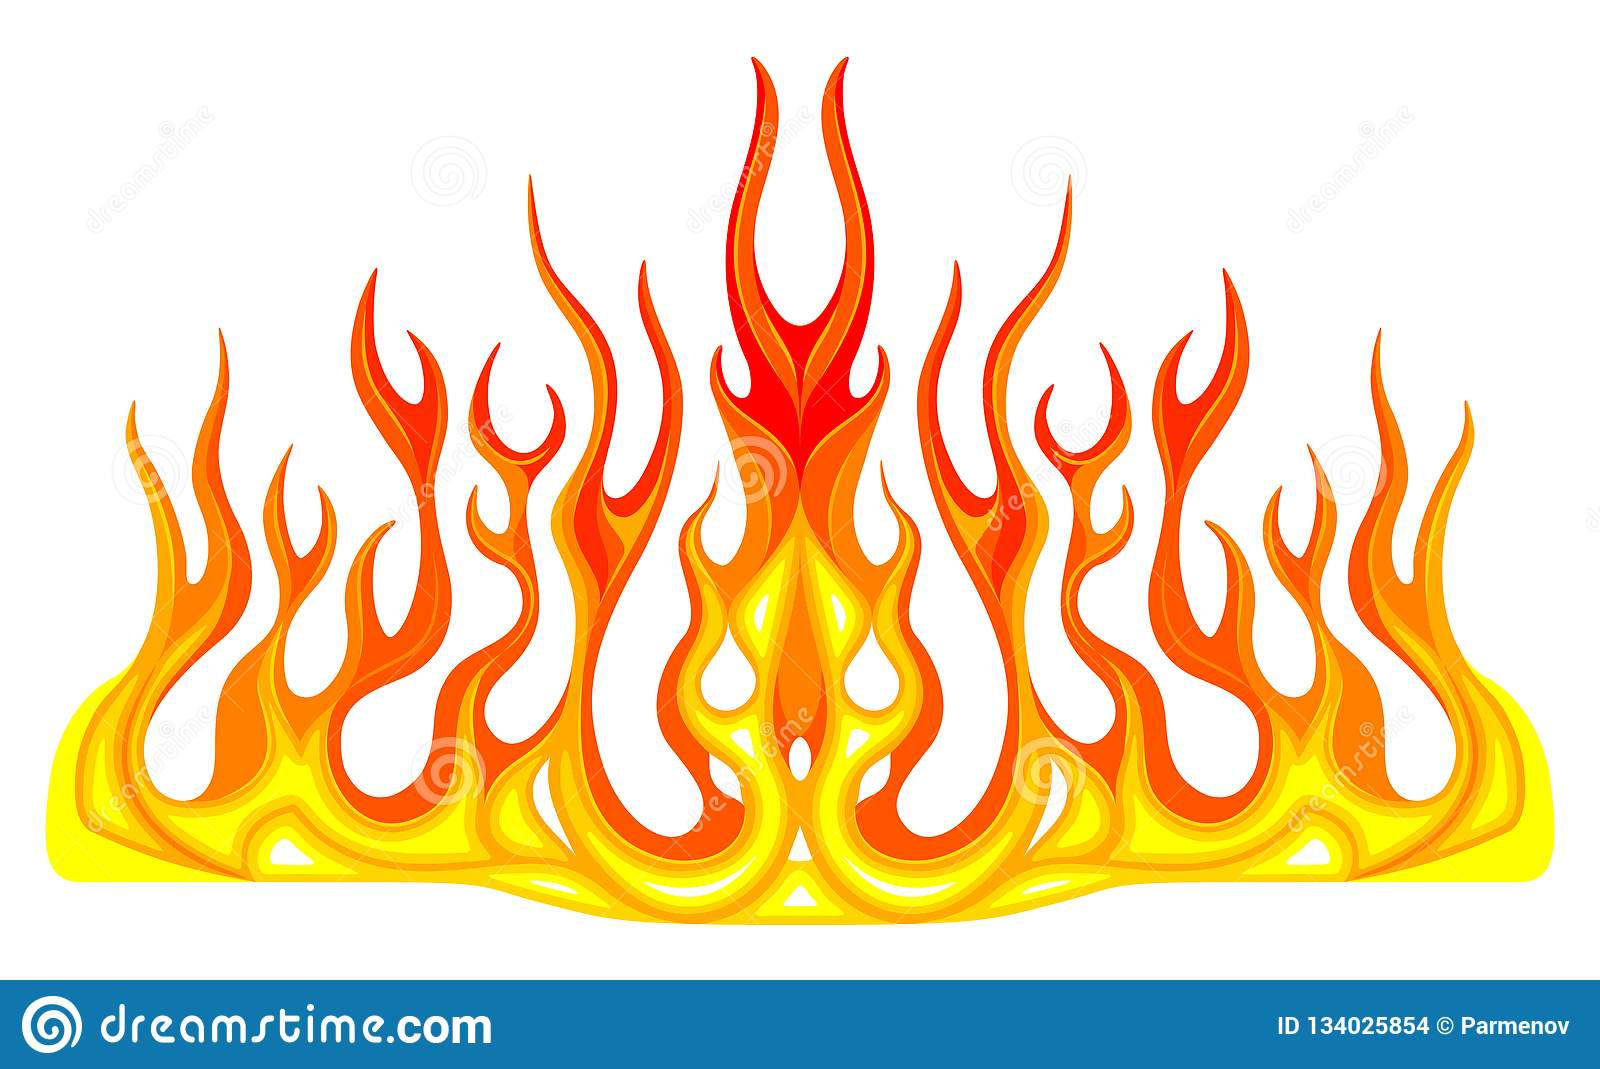 Vehicle Graphics Stripe Hot Rod Racing Flame Graffiti Car Decal Vinyl Ready On The Hood Of A Car Stock Vector Illustration Of Flame Graphics 134025854